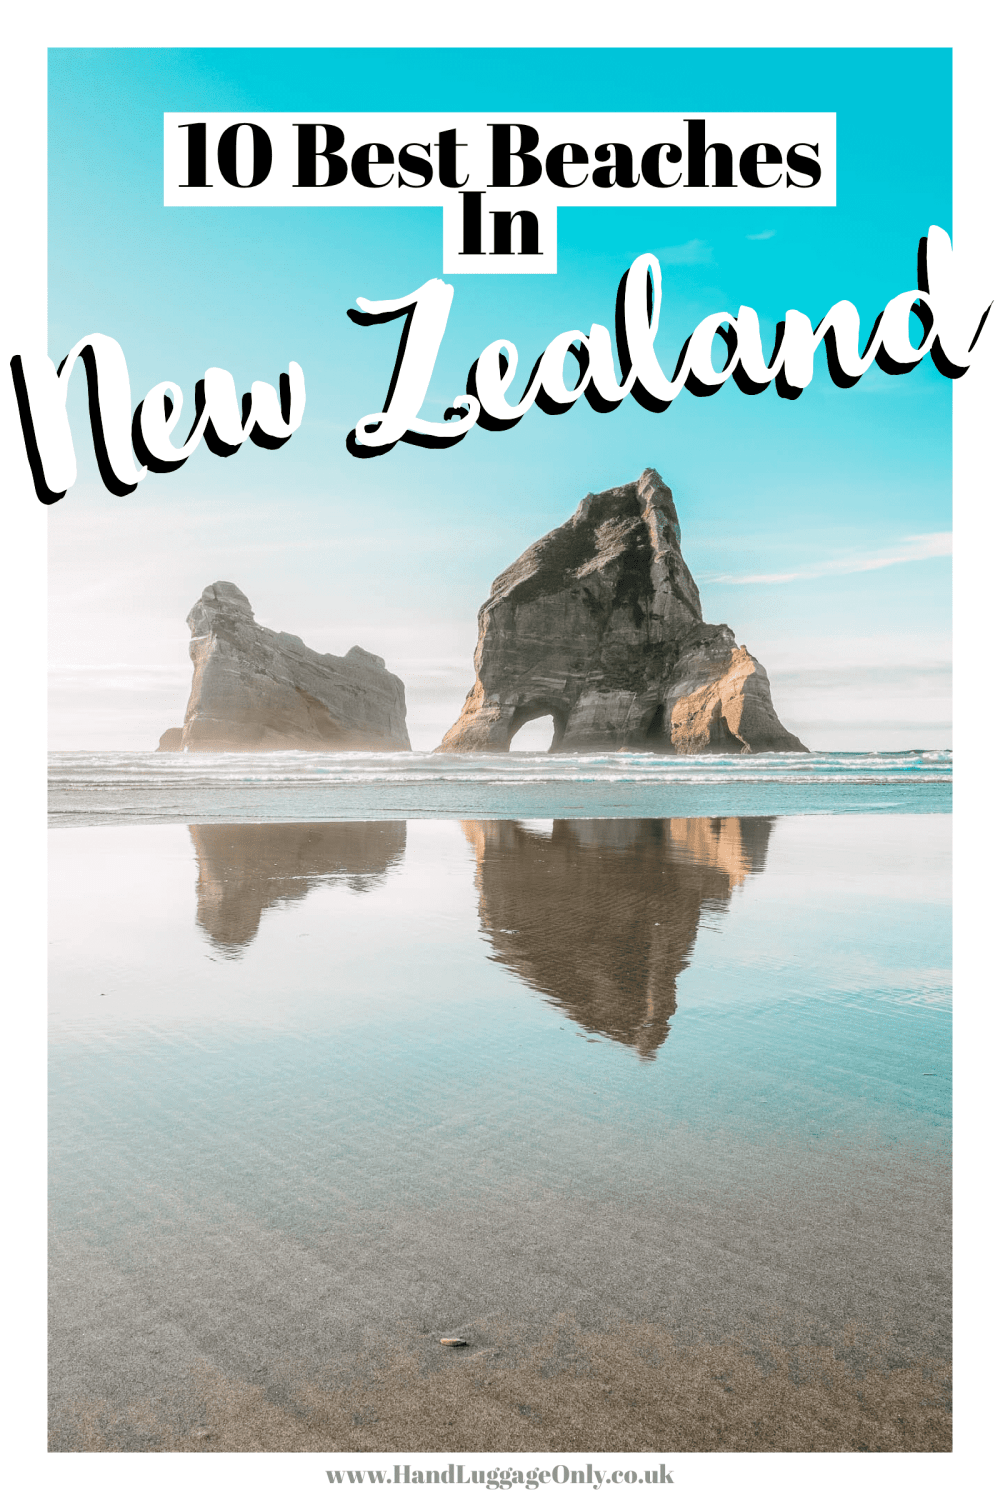 Best Beaches In New Zealand (22)